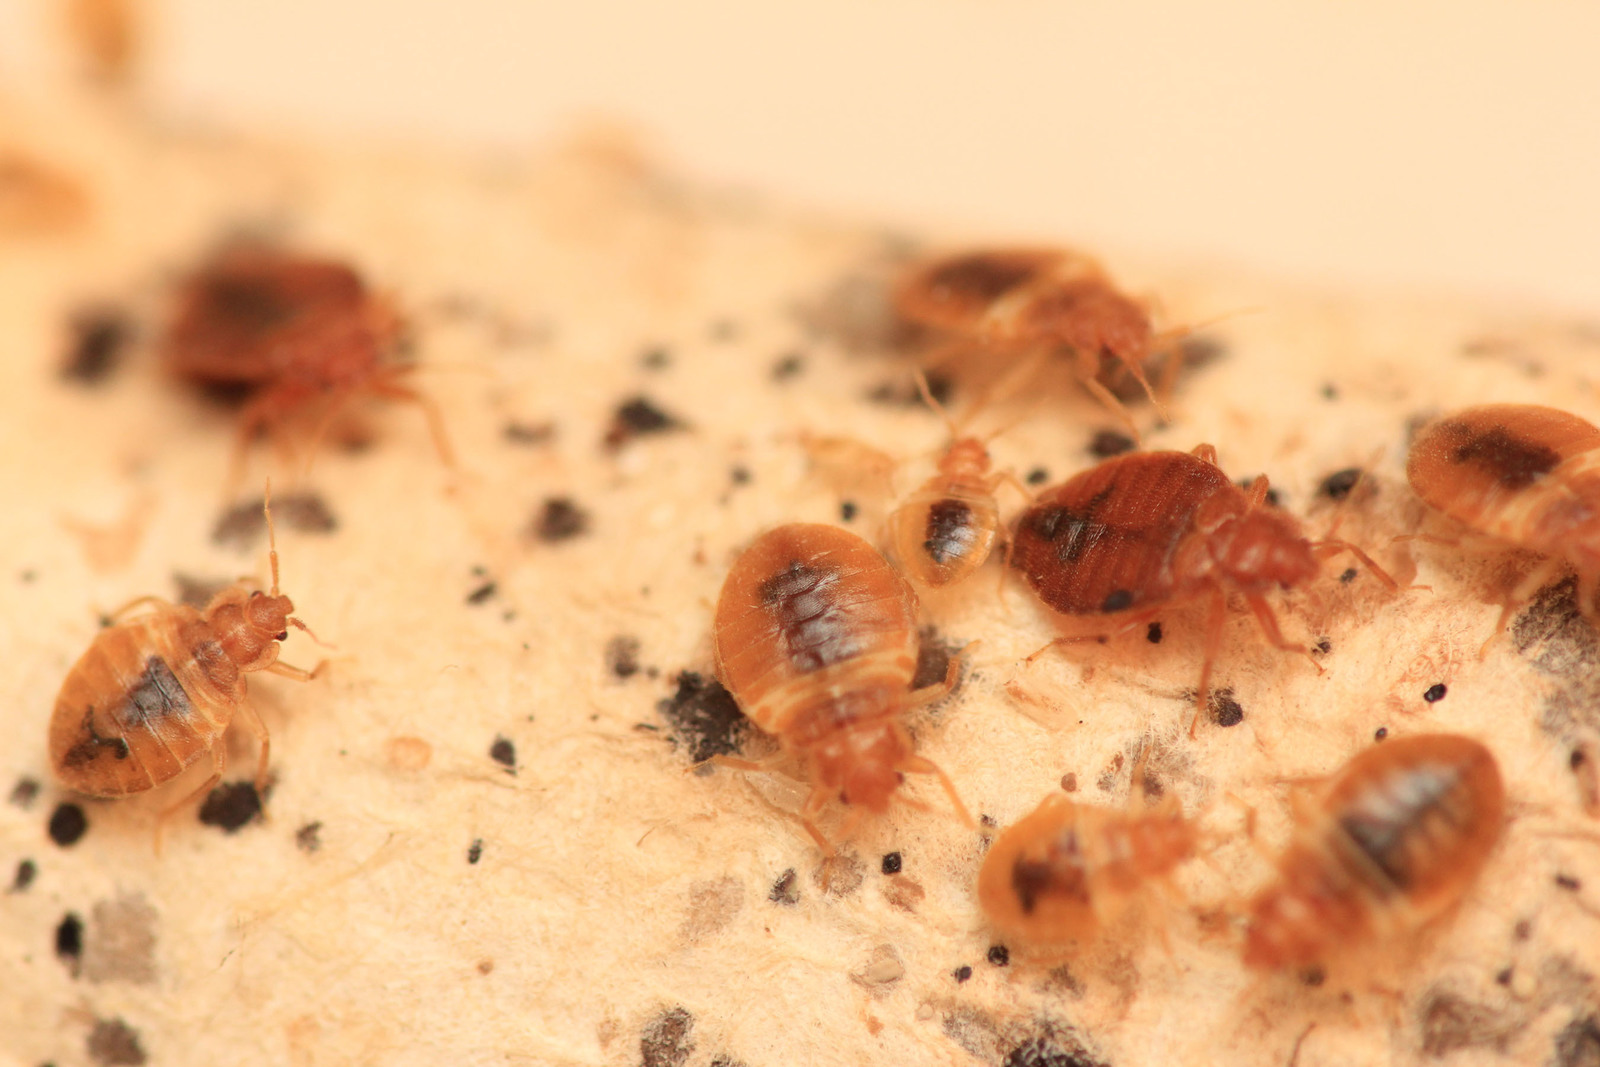 Baltimore tops Orkin's 2017 list of Top 50 Bed Bug Cities. The list is based on Orkin treatment data from Dec. 1, 2015 - Nov. 30, 2016. Orkin's parent company, Rollins, Inc., reports a 10 percent increase in bed bug revenue over the past year. (PRNewsFoto/Orkin, LLC)